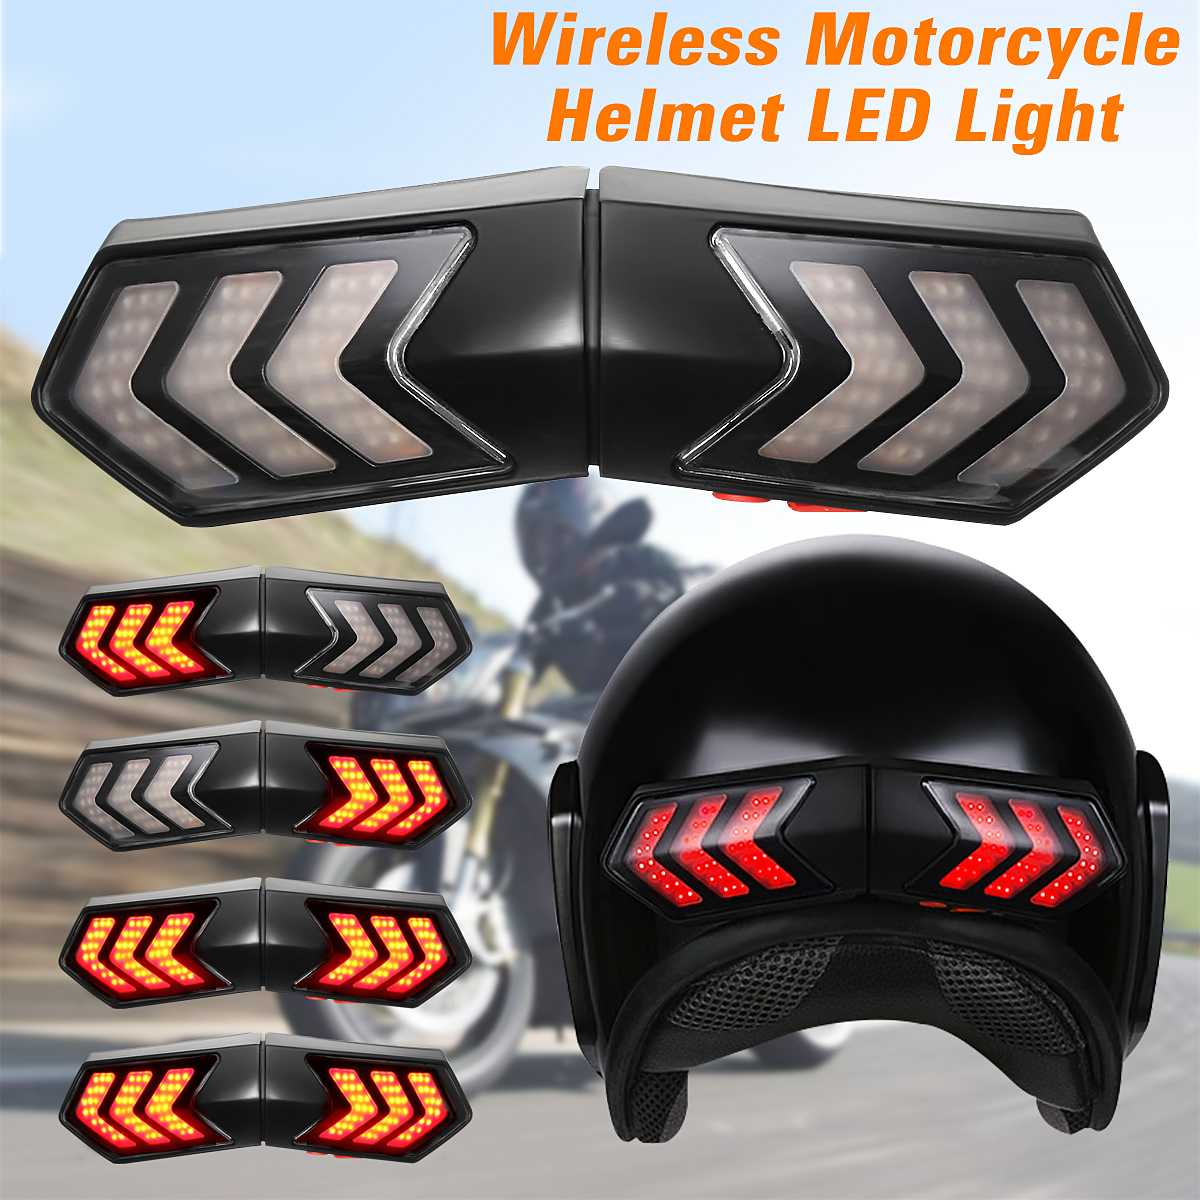 12V Wireless Motorcycle Helmet LED Safety Light...